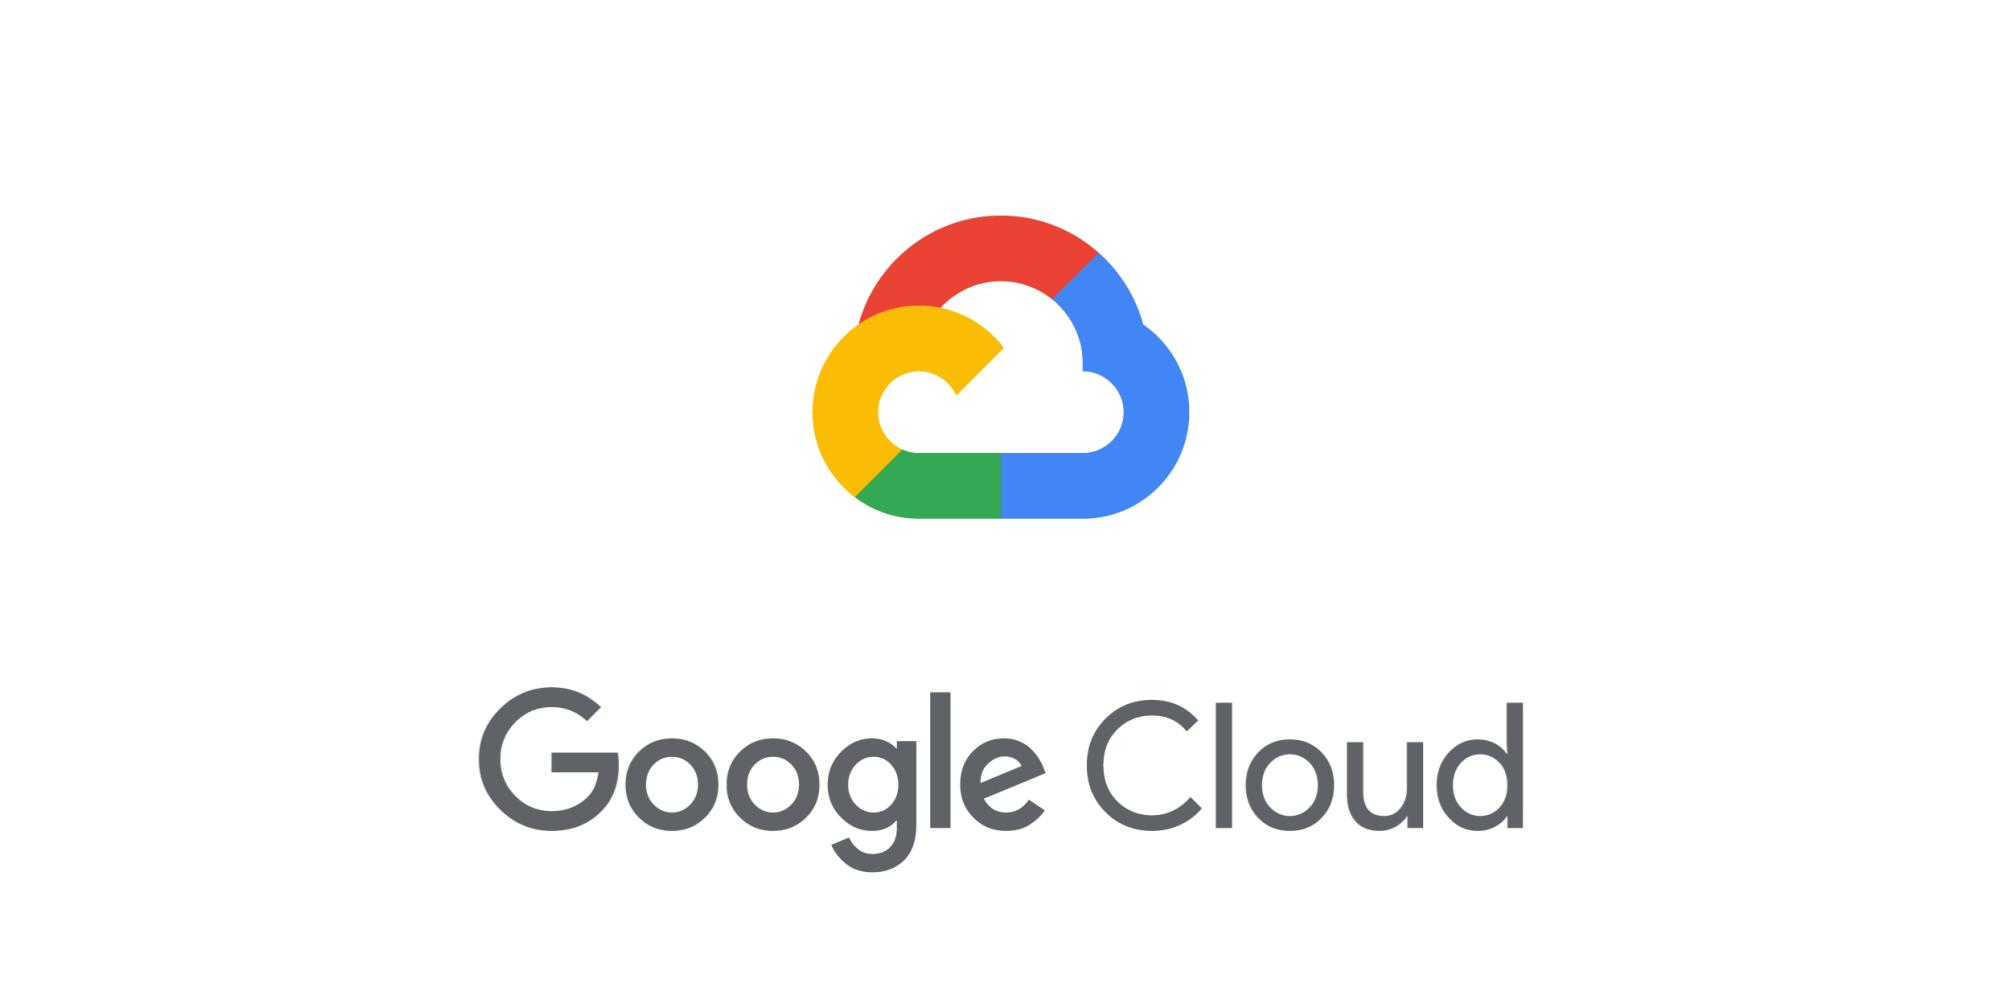 google cloud establishes new polices to prevent delay suspensions increasing support